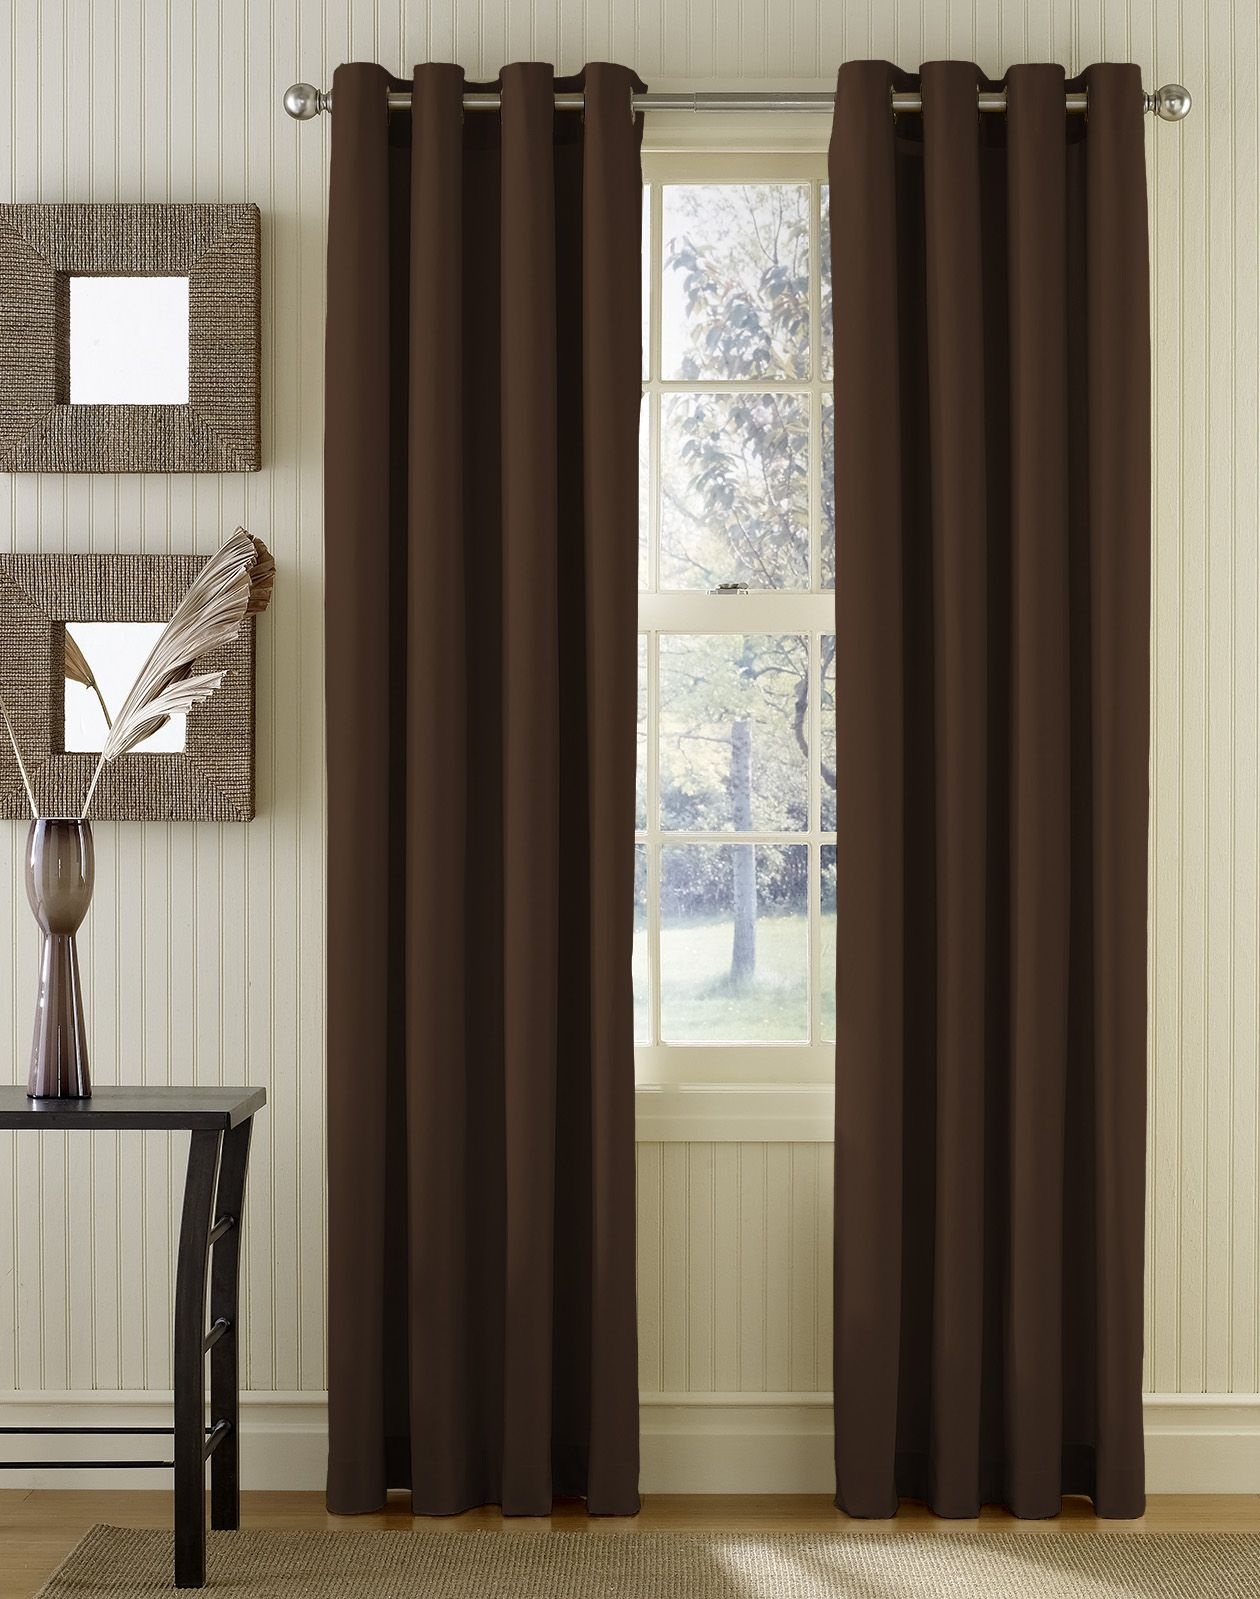 Grommet panel curtains are typically attached to the curtain rod how to hang curtains rod through